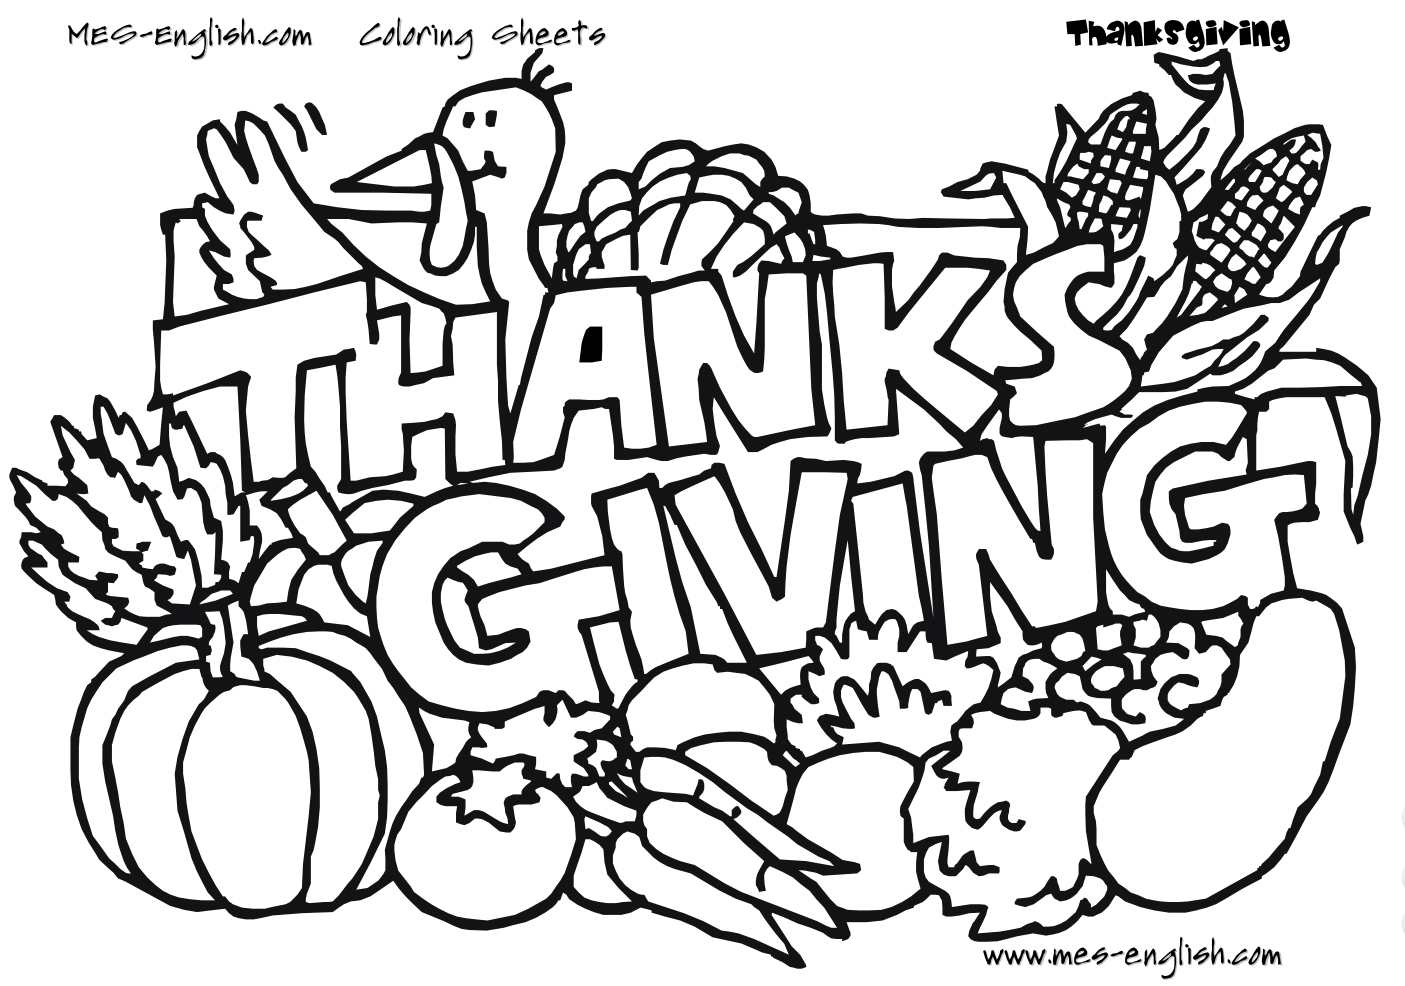 coloring pages for thanksgiving Free Thanksgiving Coloring Pages for Kids coloring pages for thanksgiving